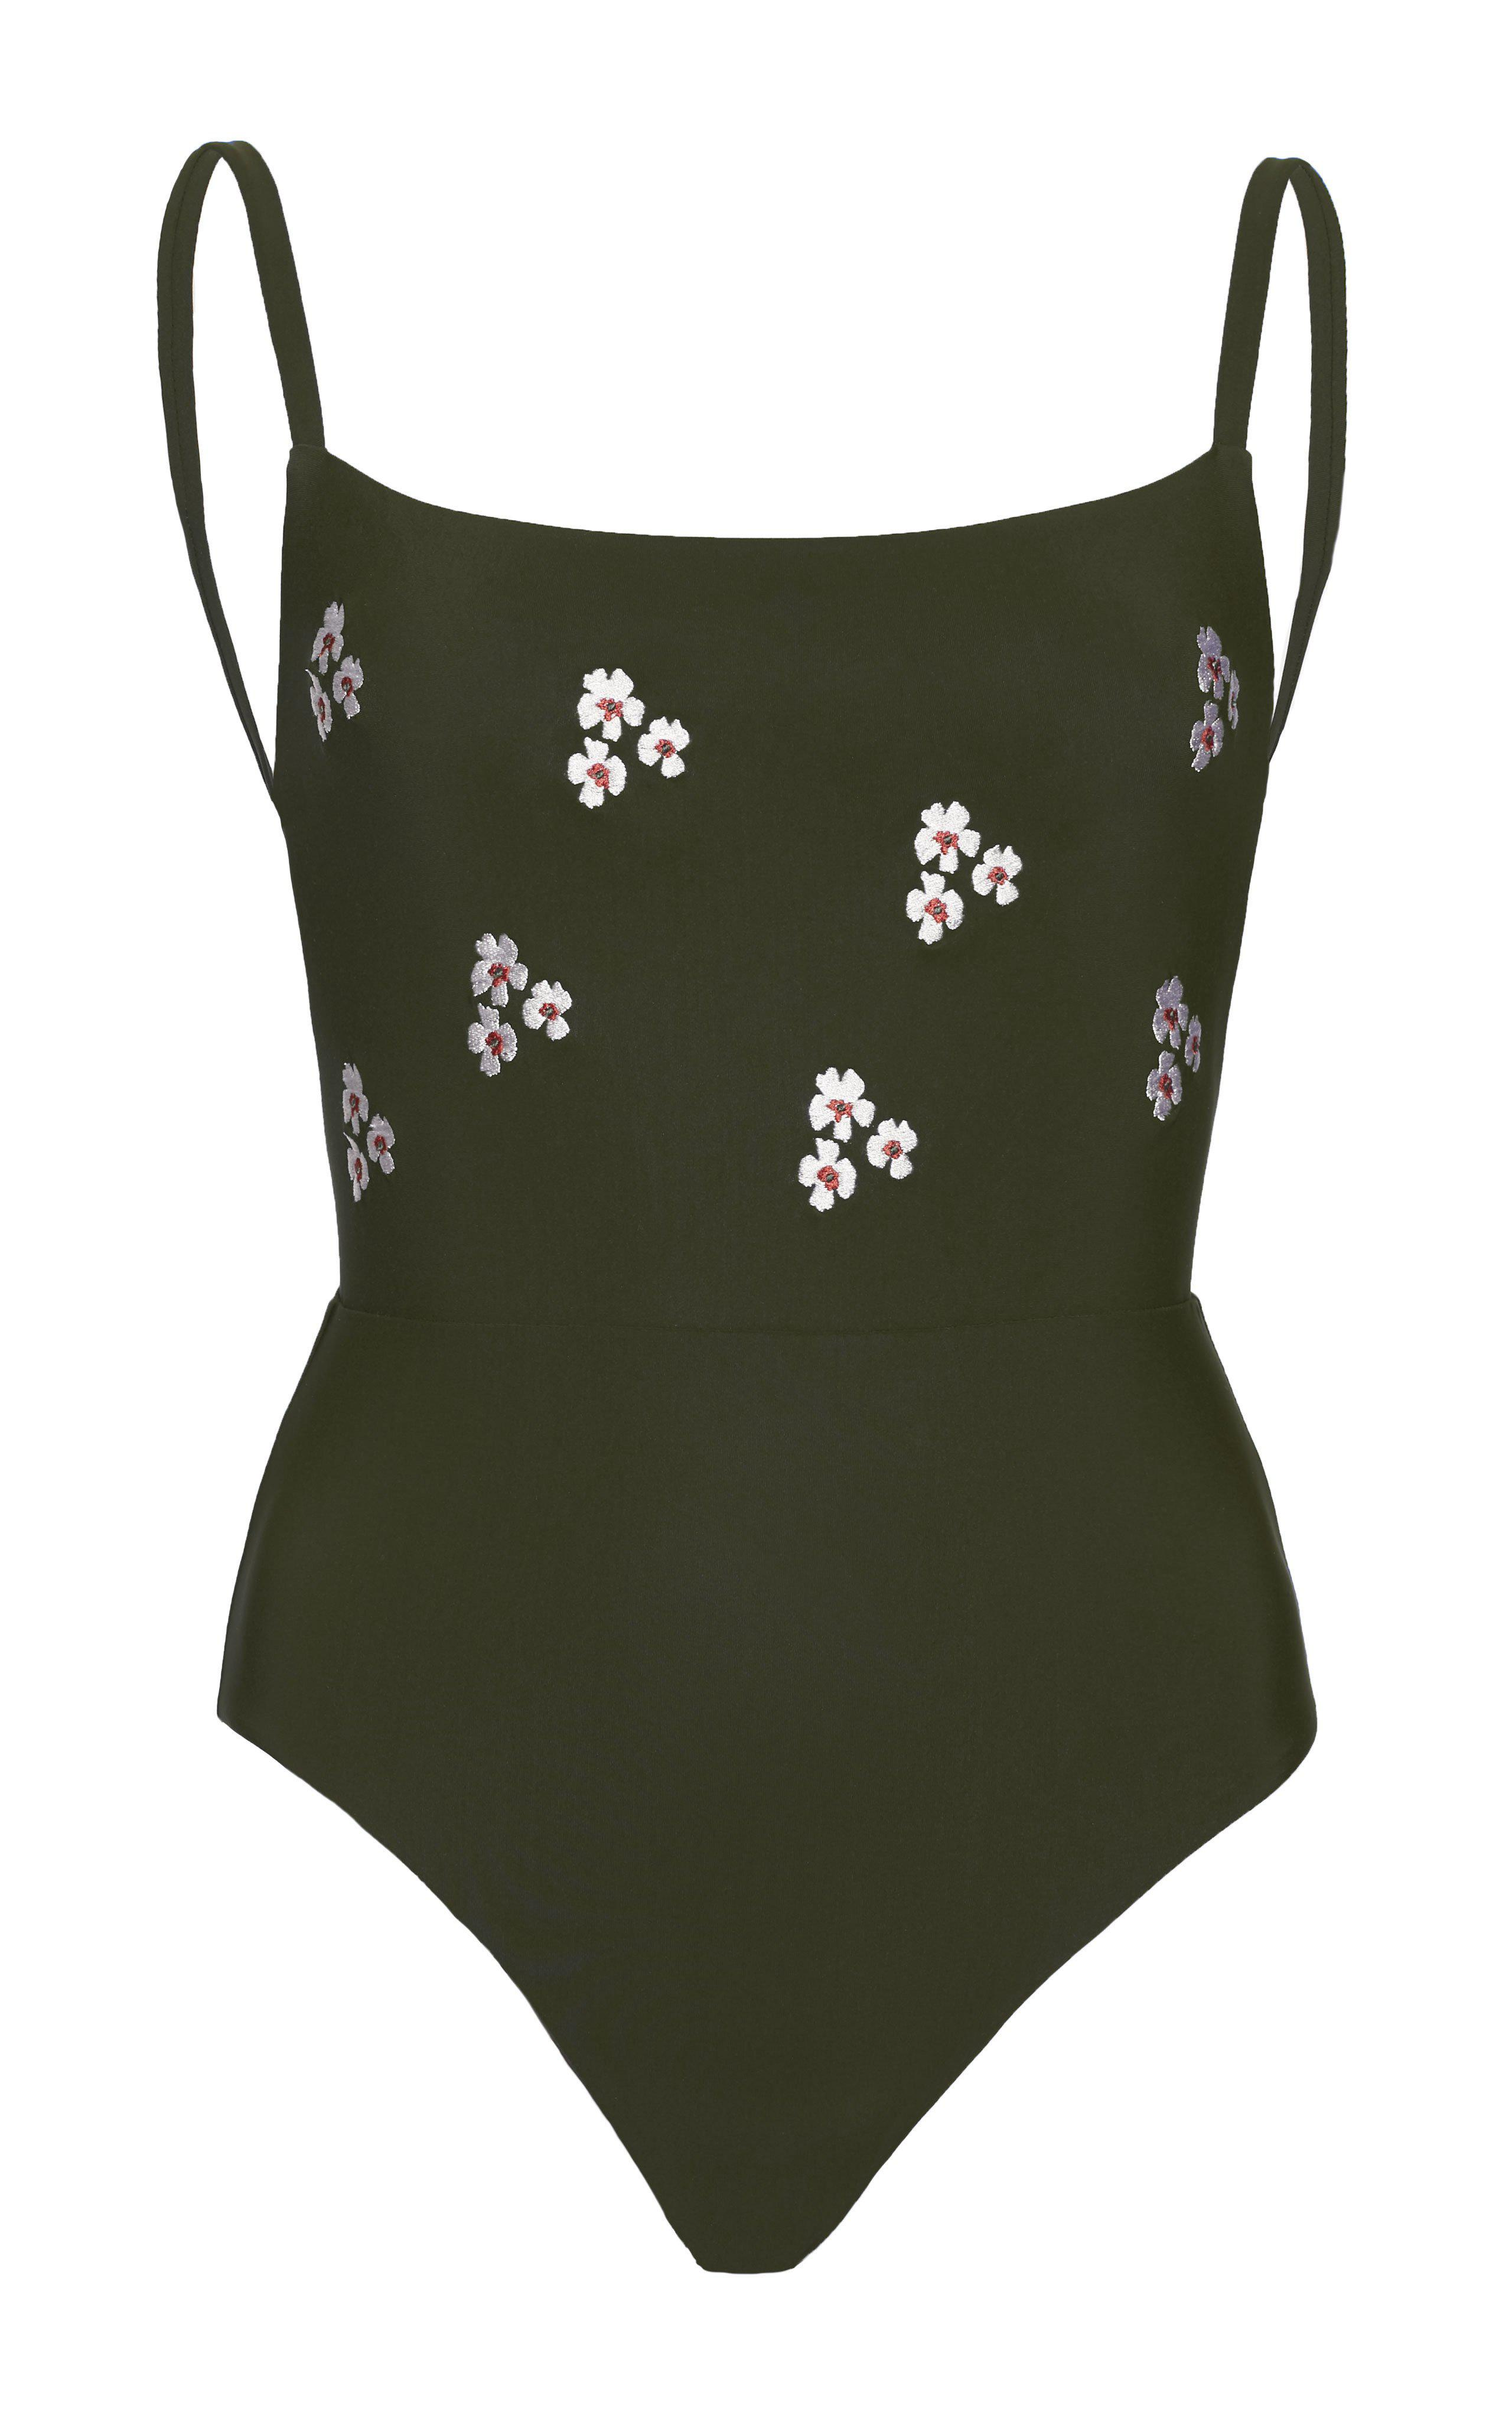 The Square Neck One Piece with Floral Embroidery